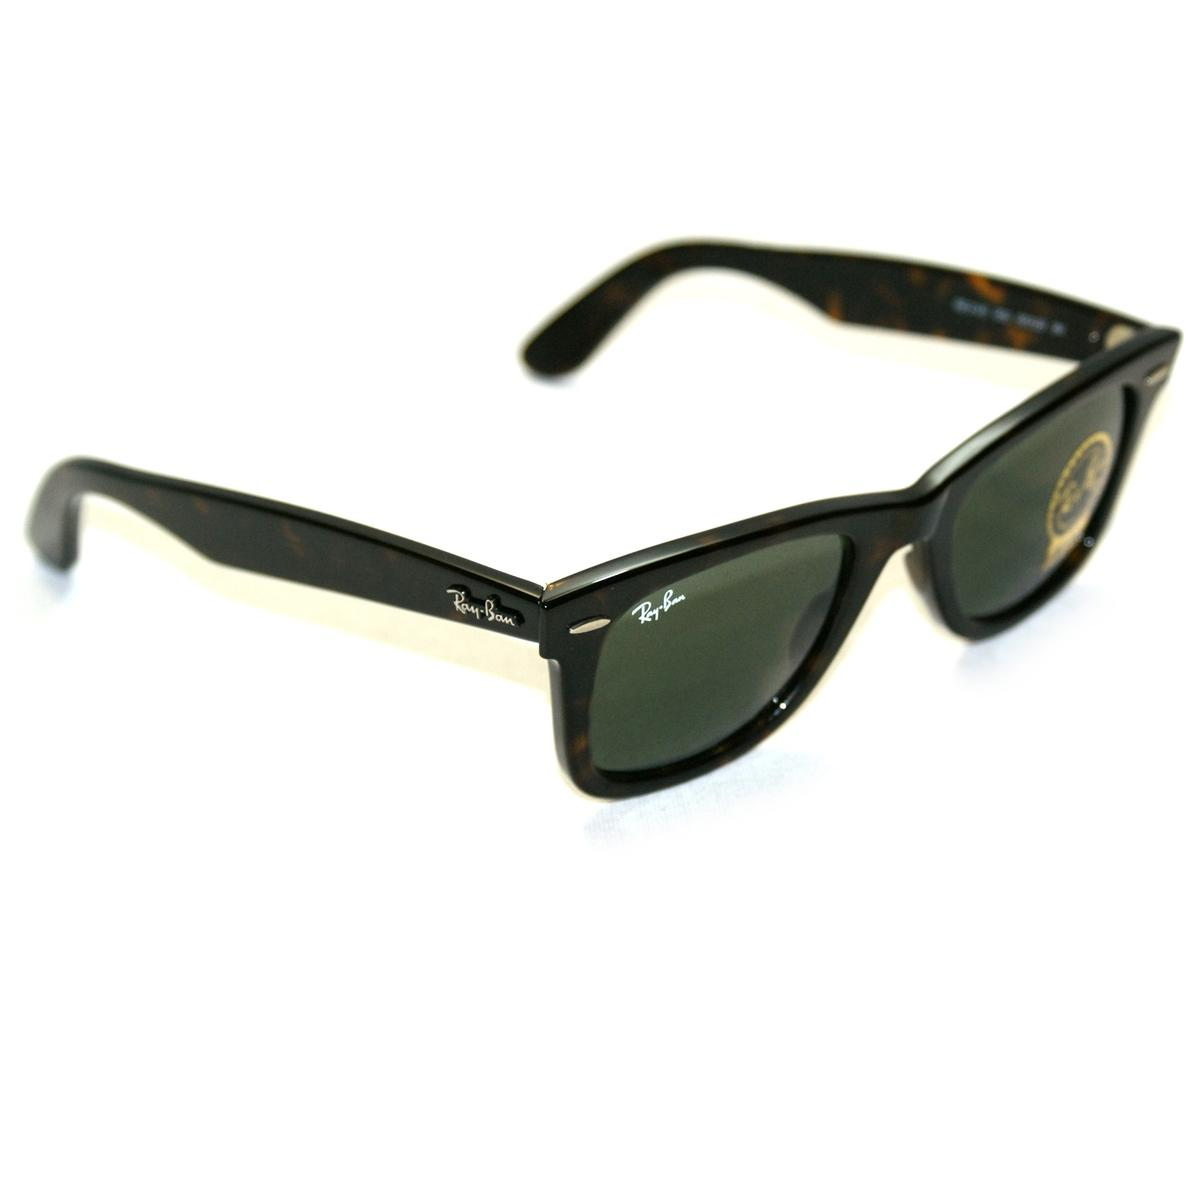 Ray Ban Wayfarer Sunglasses Dark Brown